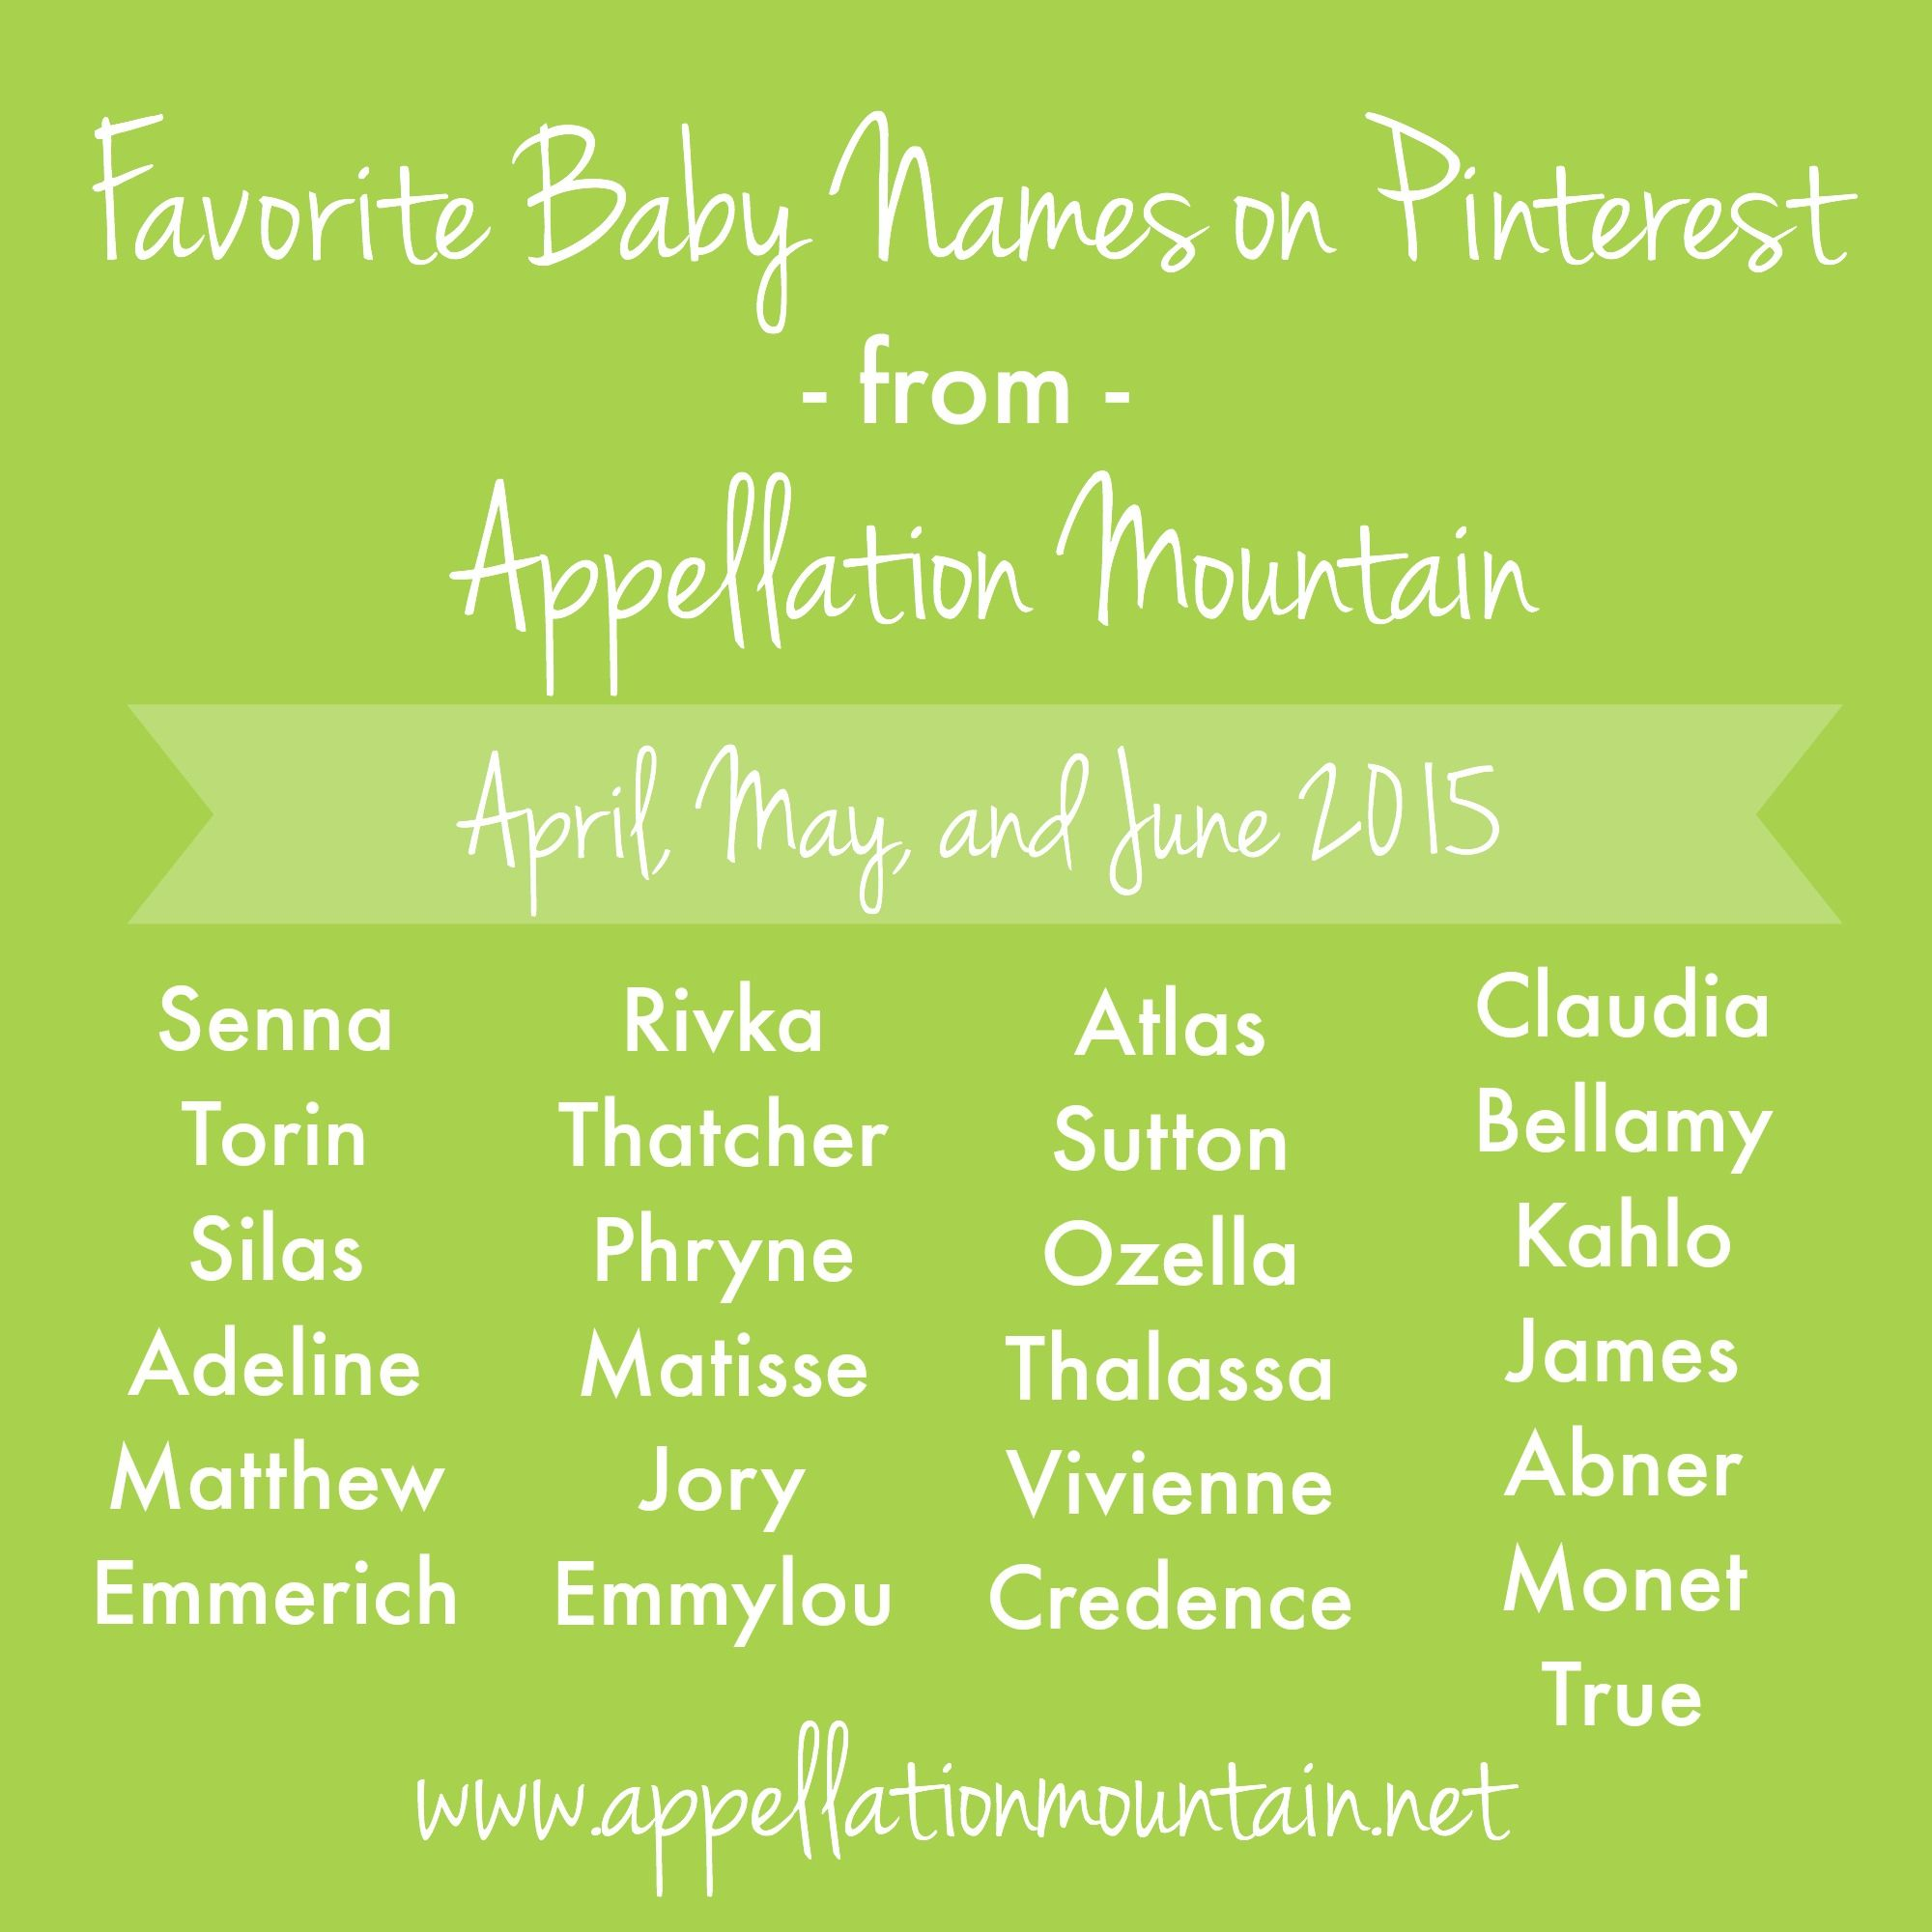 Favorite Baby Name Posts Second Quarter 2015 Appellation Mountain In 2021 Baby Names Pretty Names Names With Meaning